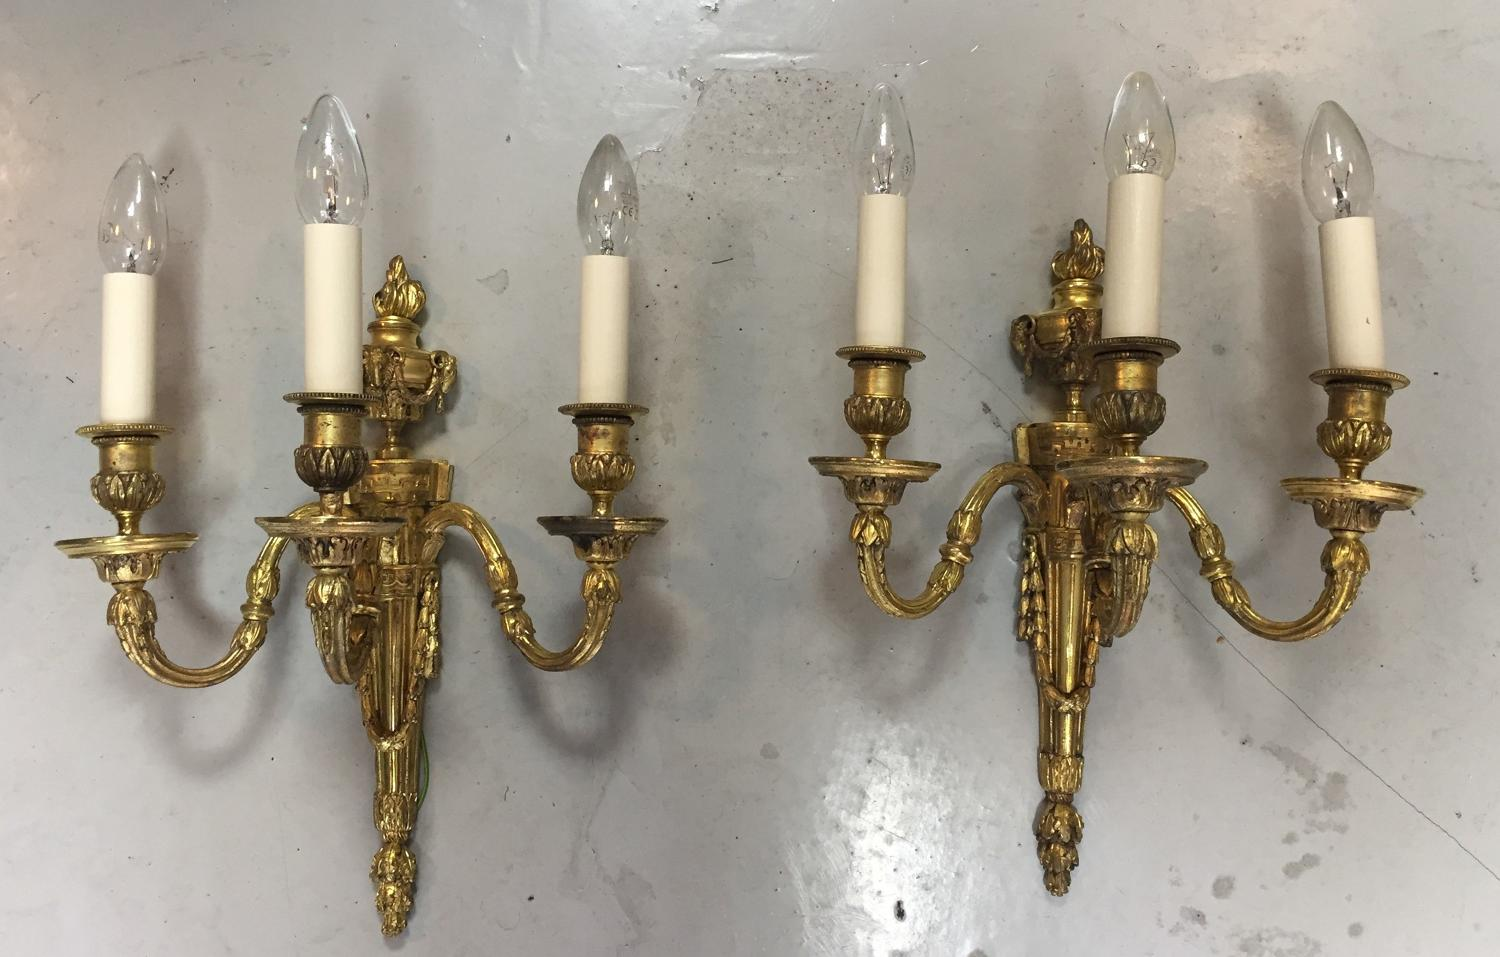 A set of three large Adam style wall lights